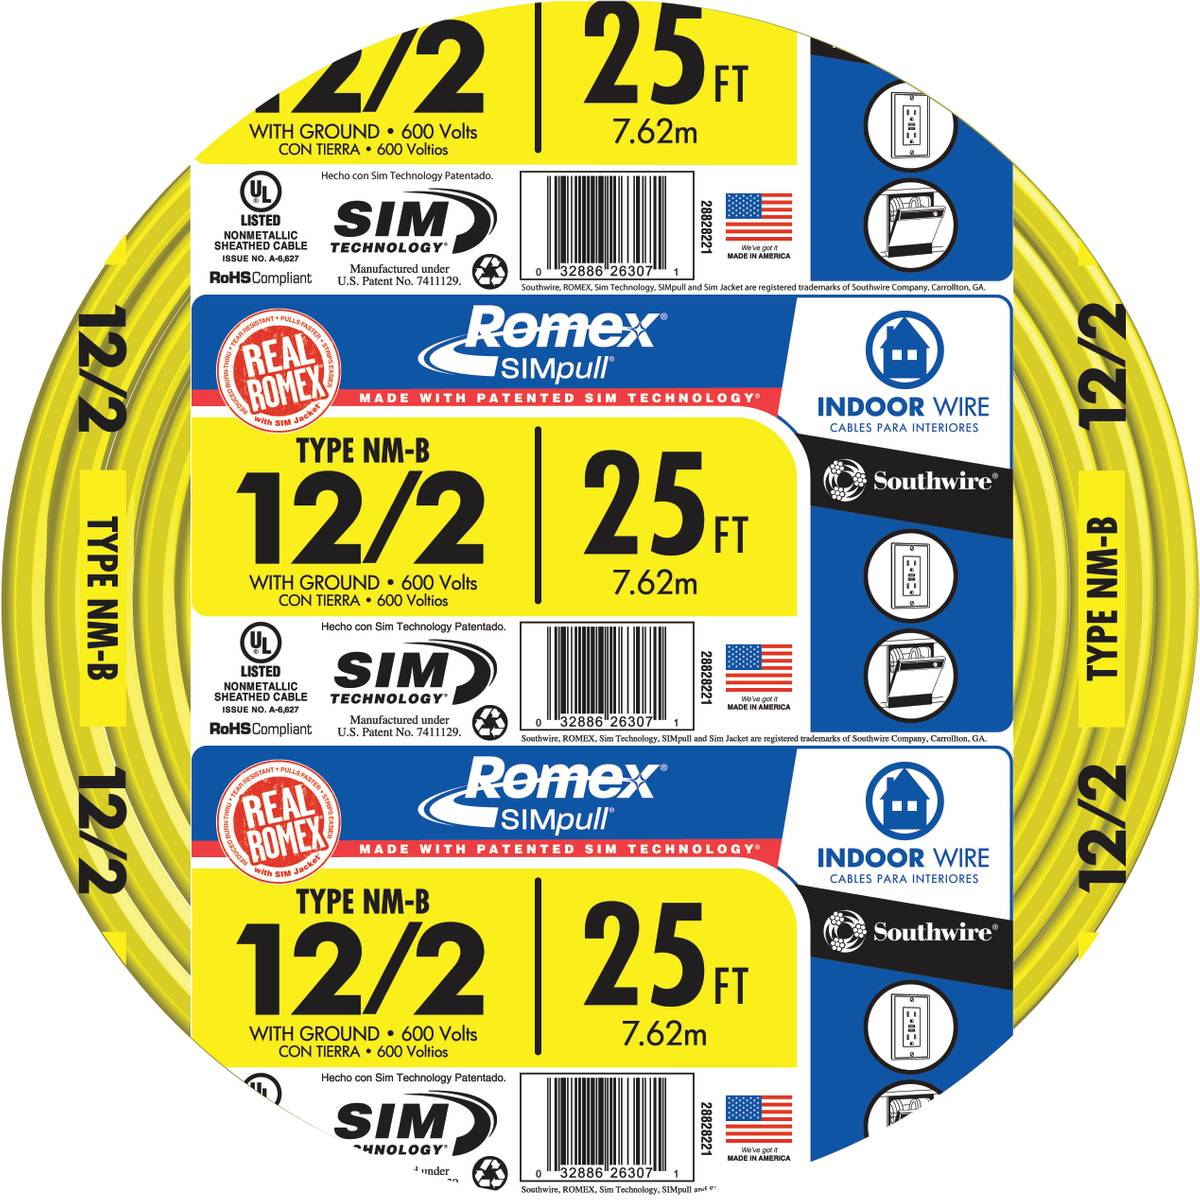 Southwire Romex SIMpull NM-B 12/2 Indoor Wire with Ground